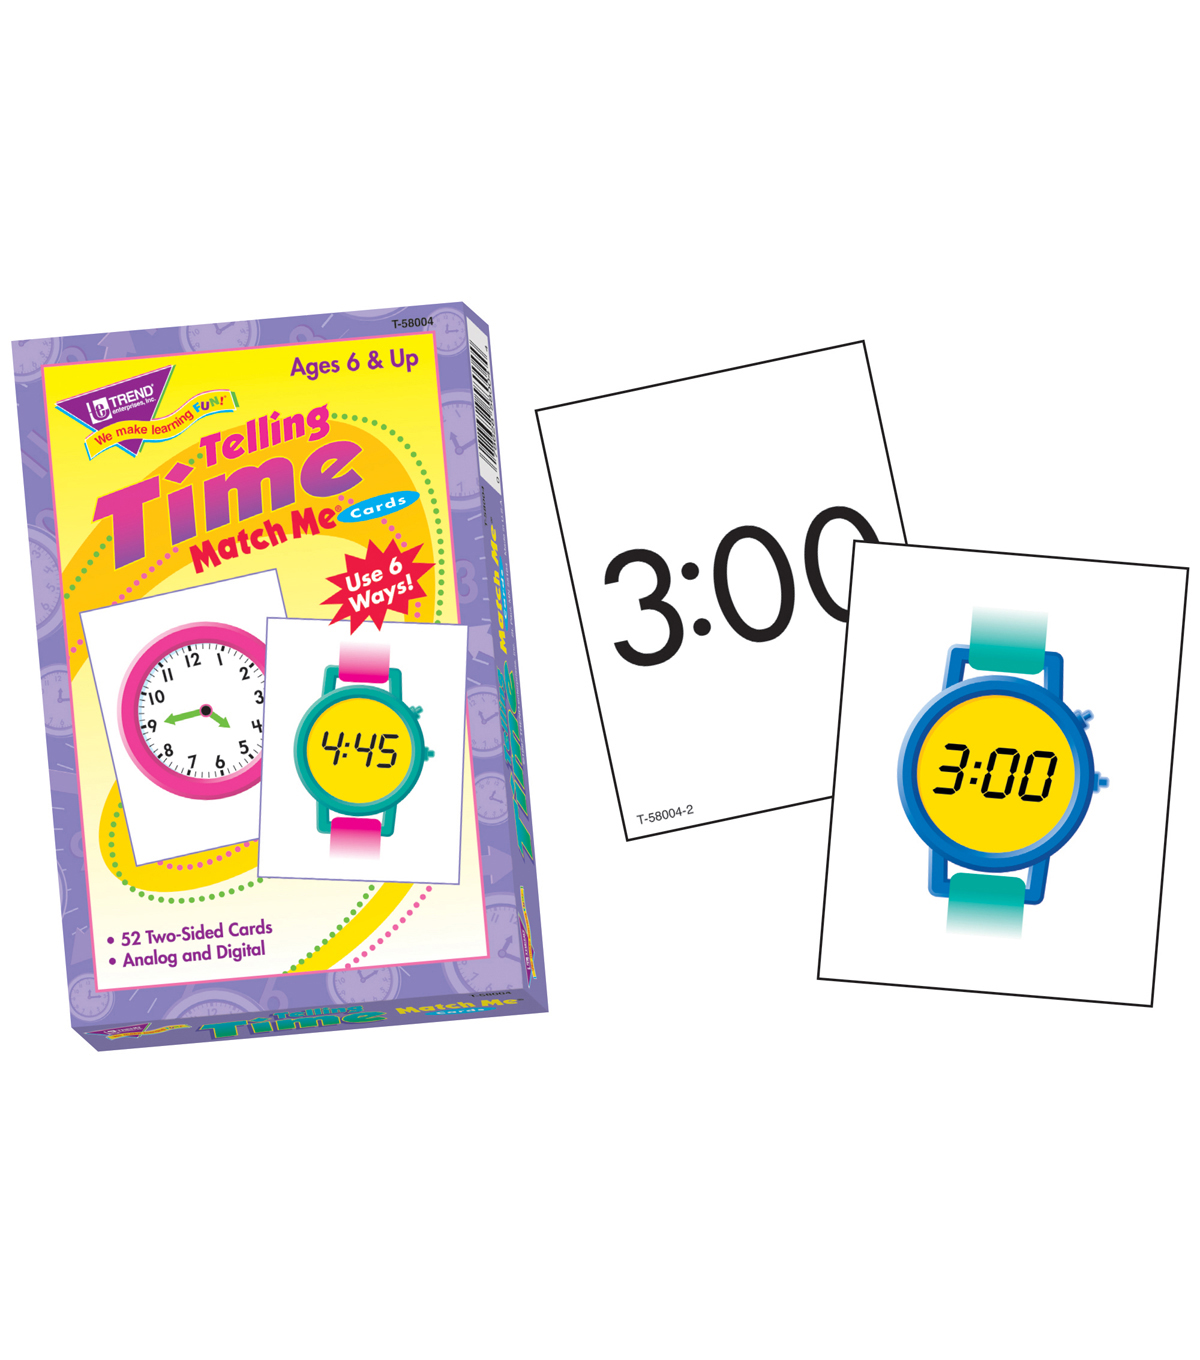 TREND enterprises, Inc. Telling Time Match Me Cards, 6 Sets